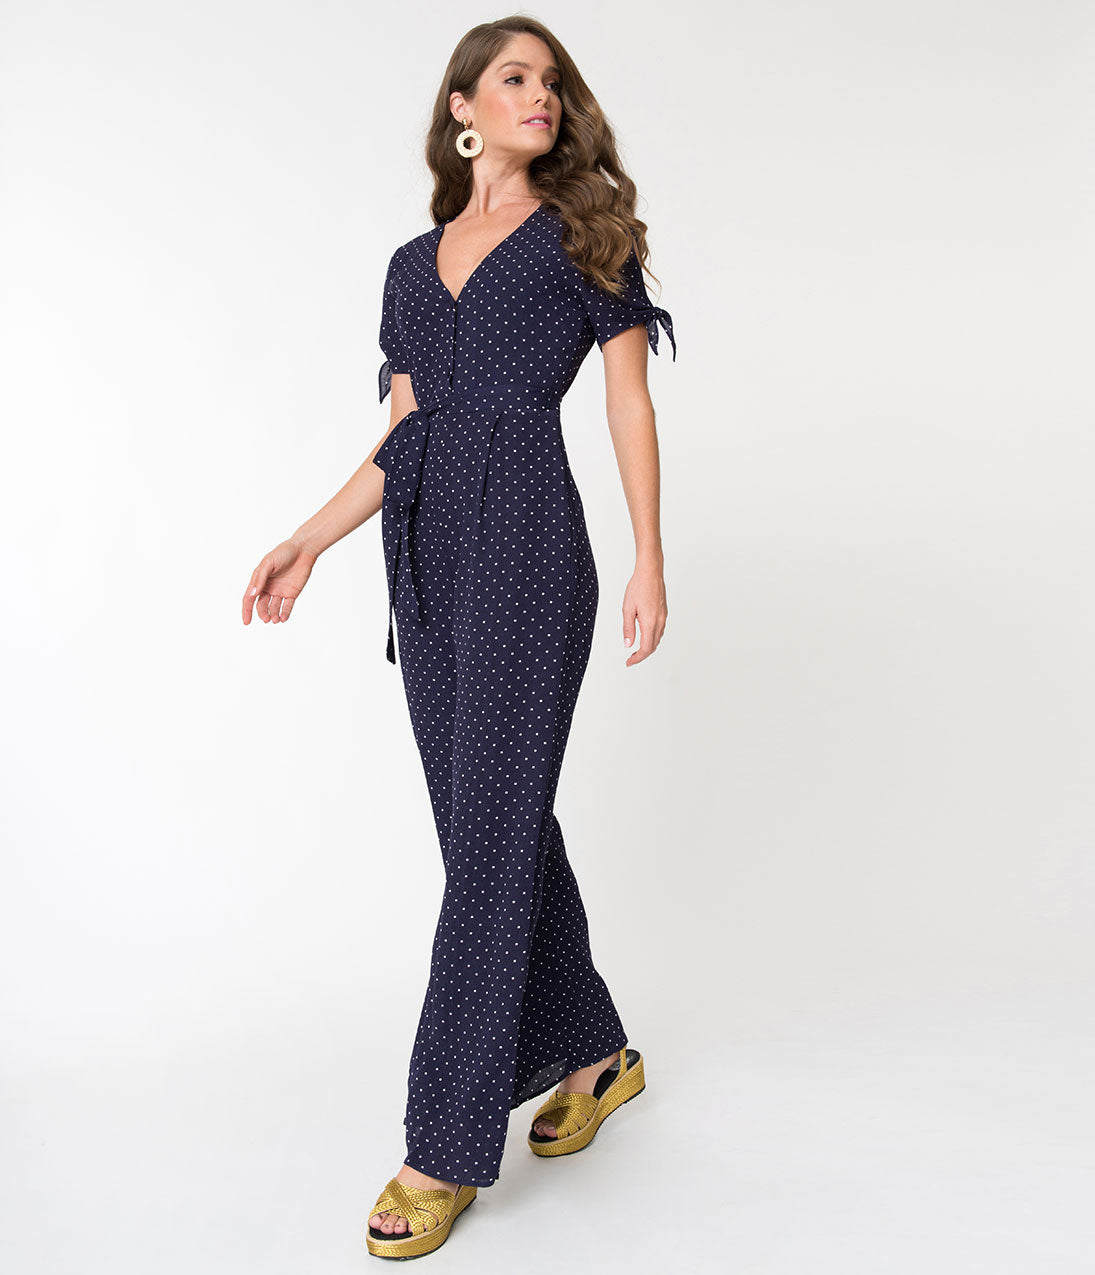 Vintage High Waisted Trousers, Sailor Pants, Jeans 1970S Style Navy Blue  White Polka Dot Button Up Jumpsuit $72.00 AT vintagedancer.com